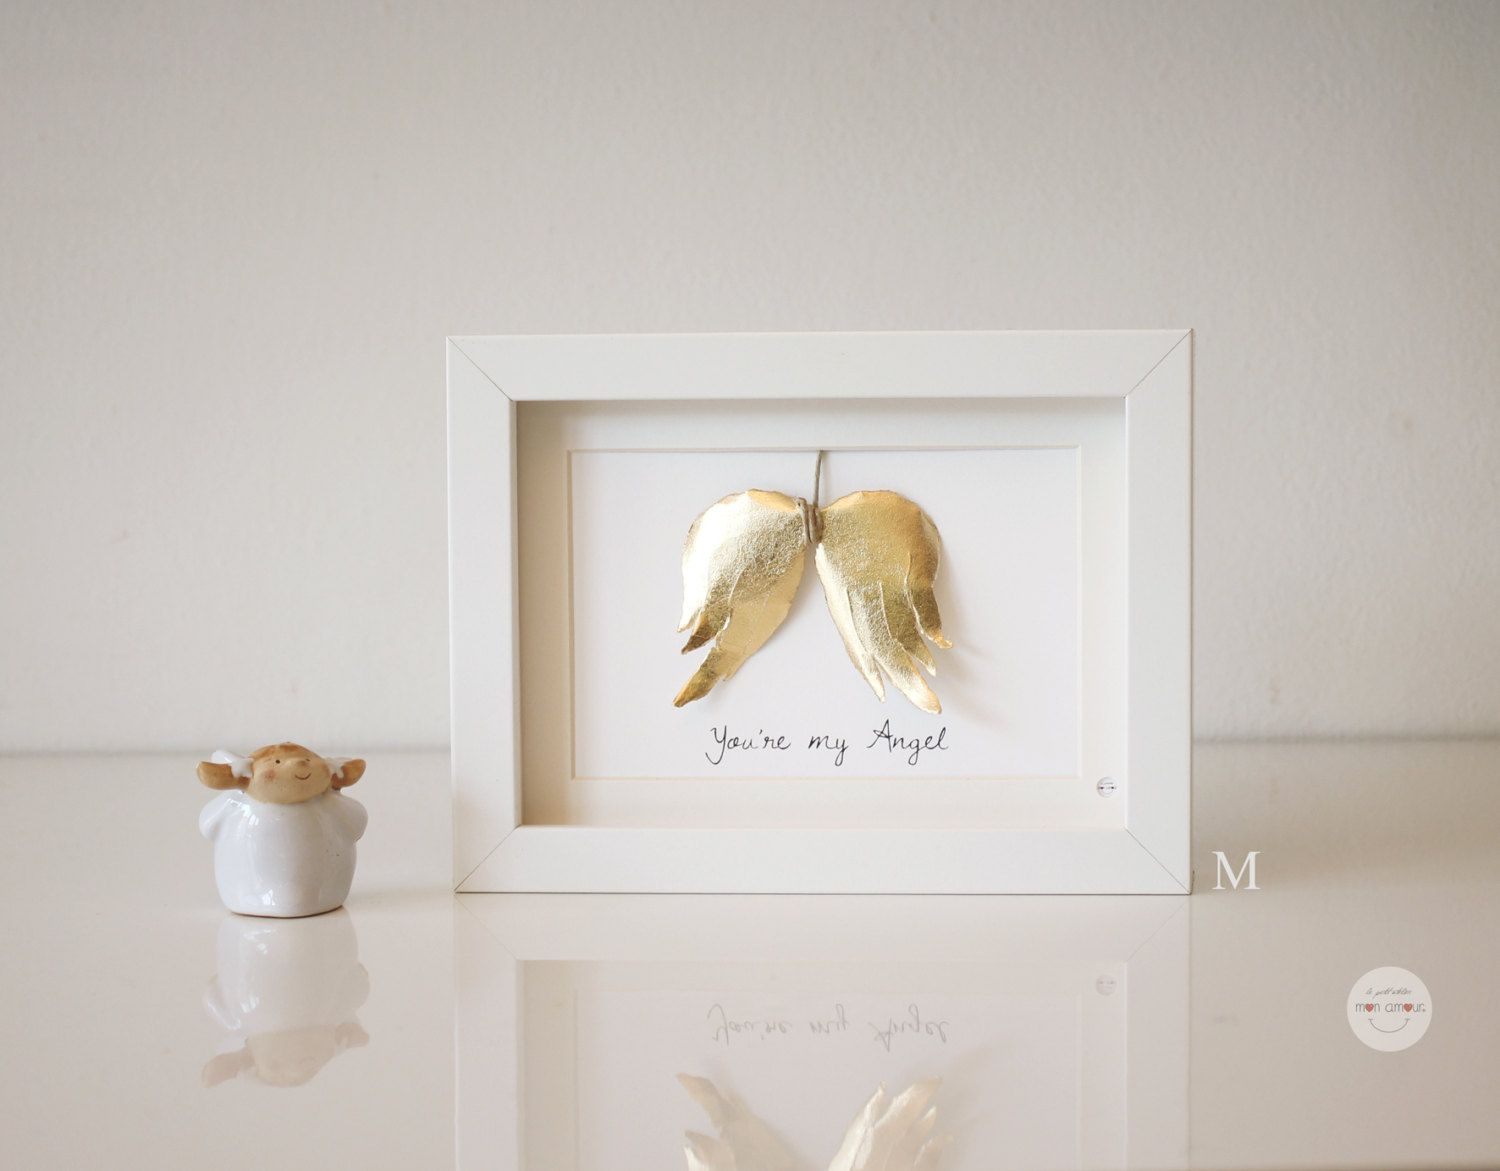 Best friend gift wedding gift baby baptism gift youre my best friend gift wedding gift baby baptism gift youre my angel angels wings paper 3d gold leaf hand made frame with glass jeuxipadfo Image collections